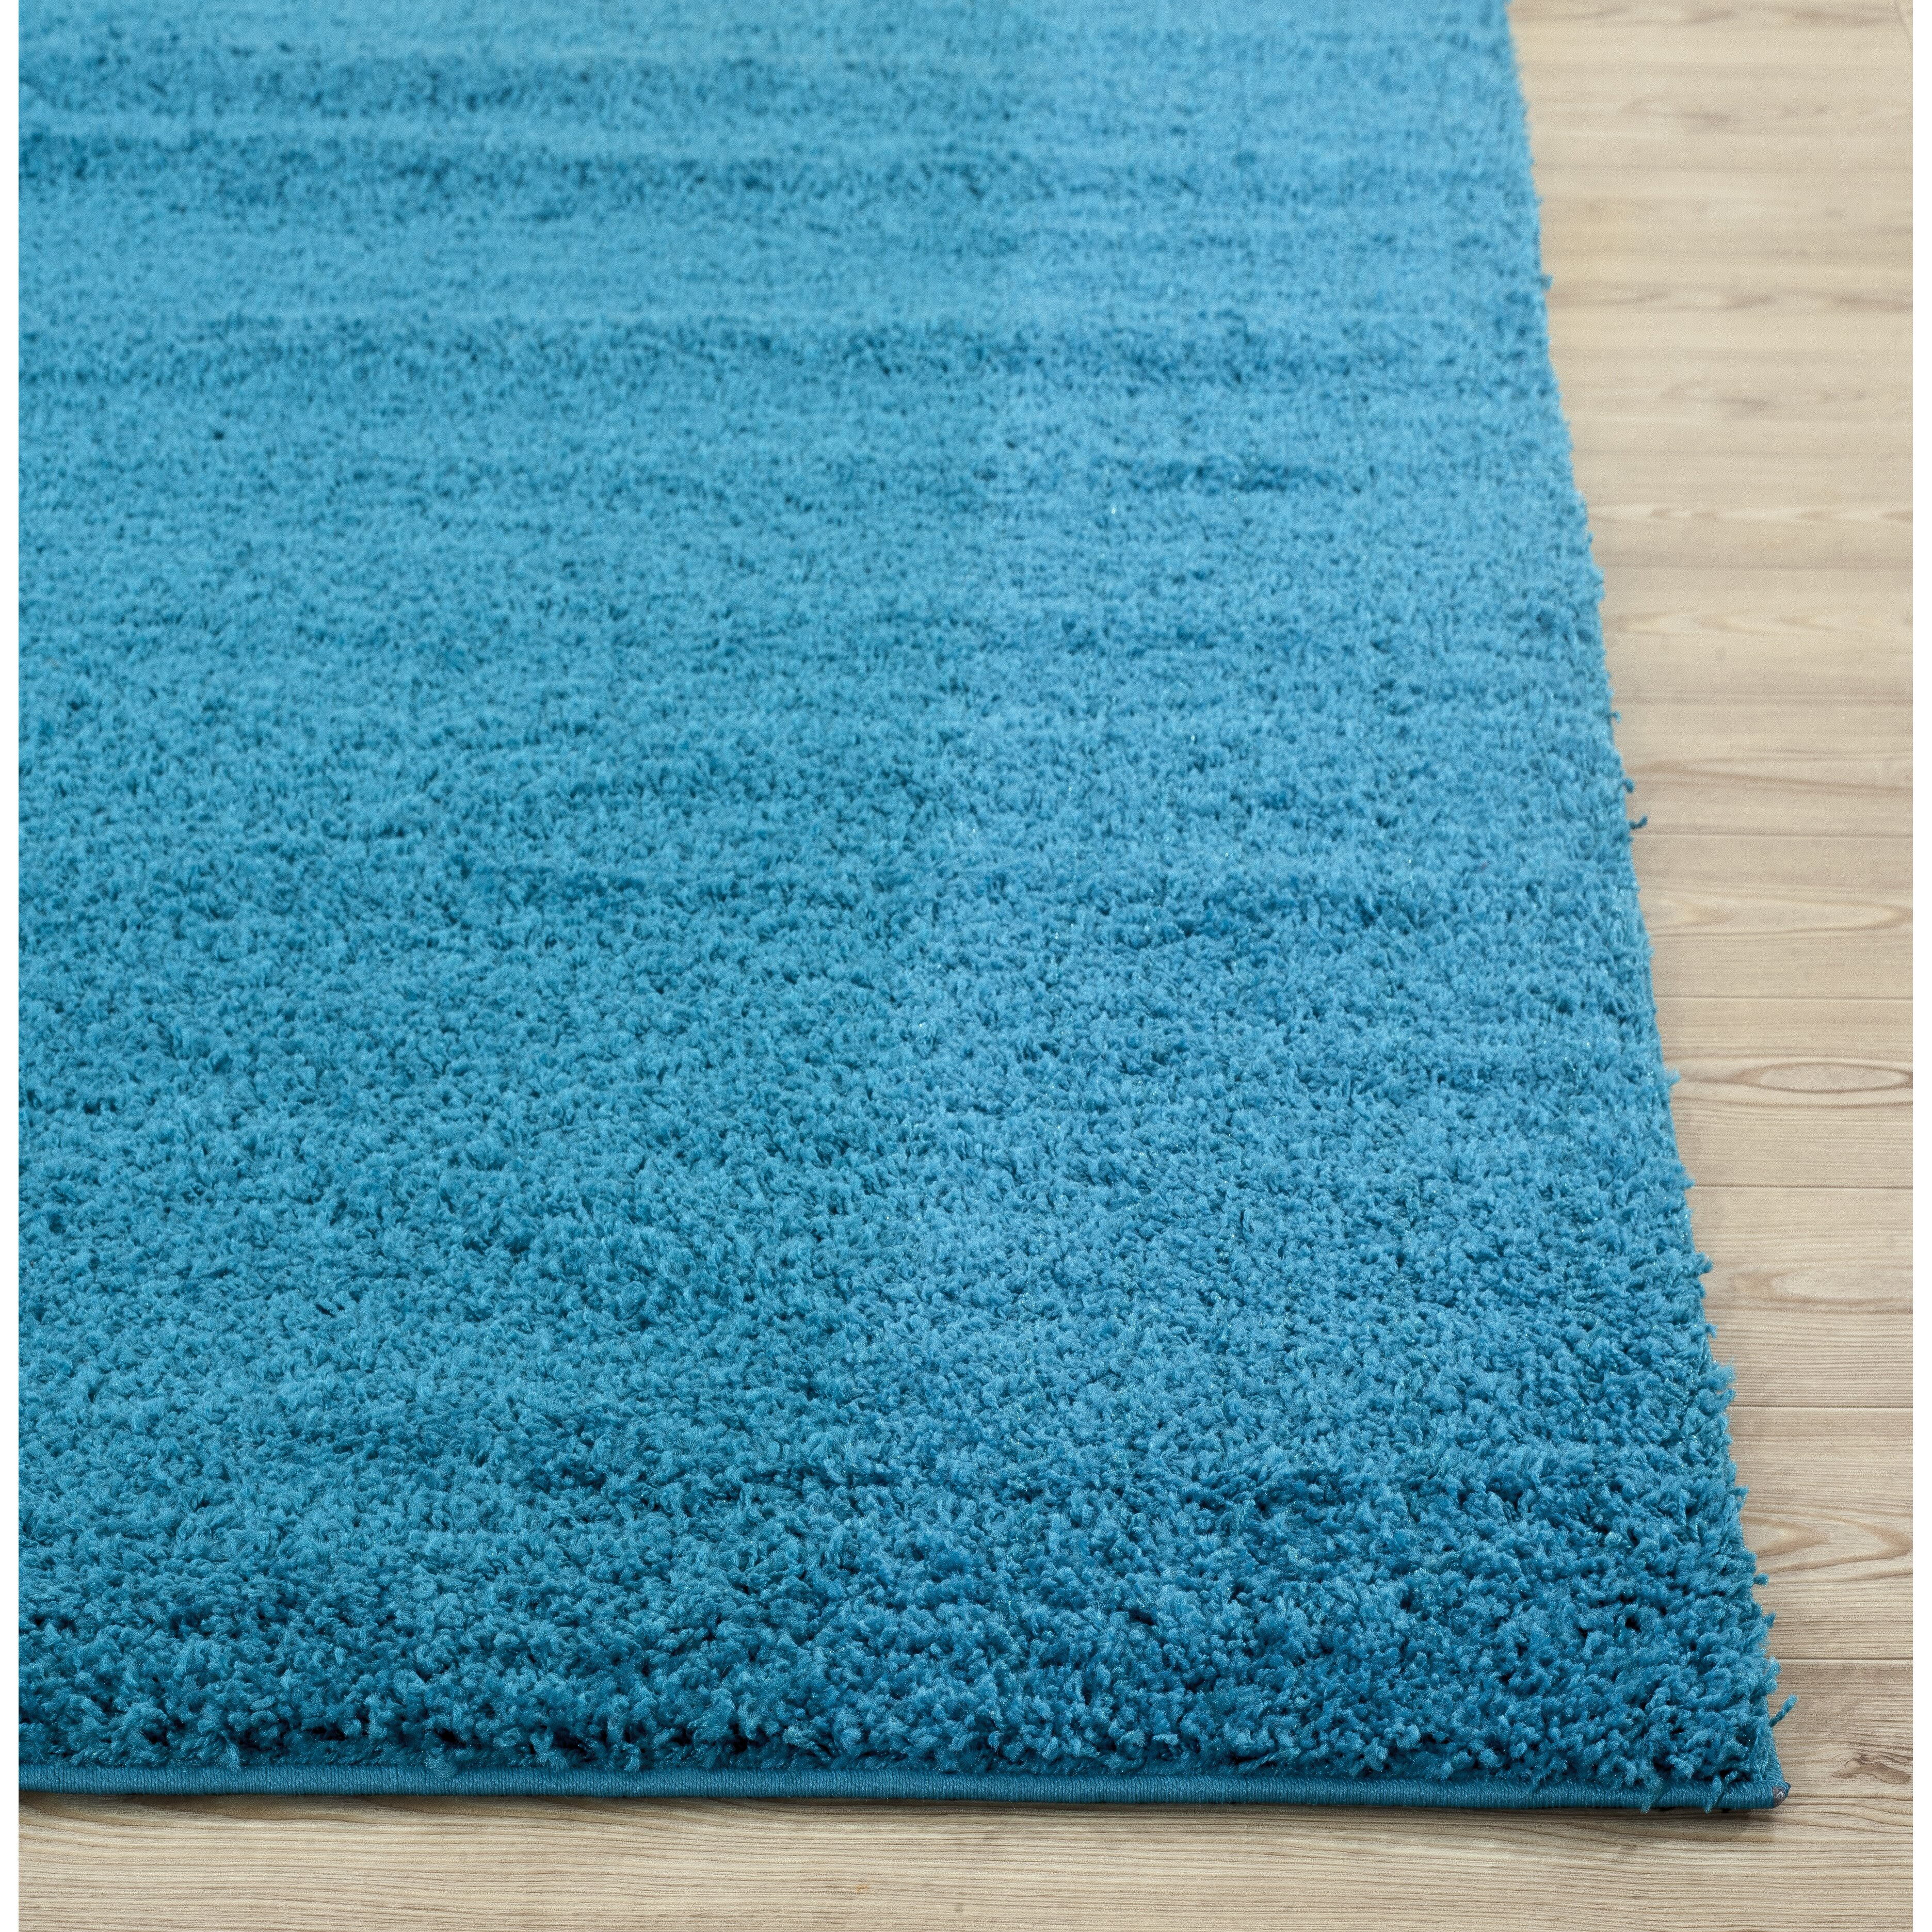 World Rug Gallery Florida Turquoise Area Rug Reviews: World Rug Gallery Florida Turquoise Area Rug & Reviews